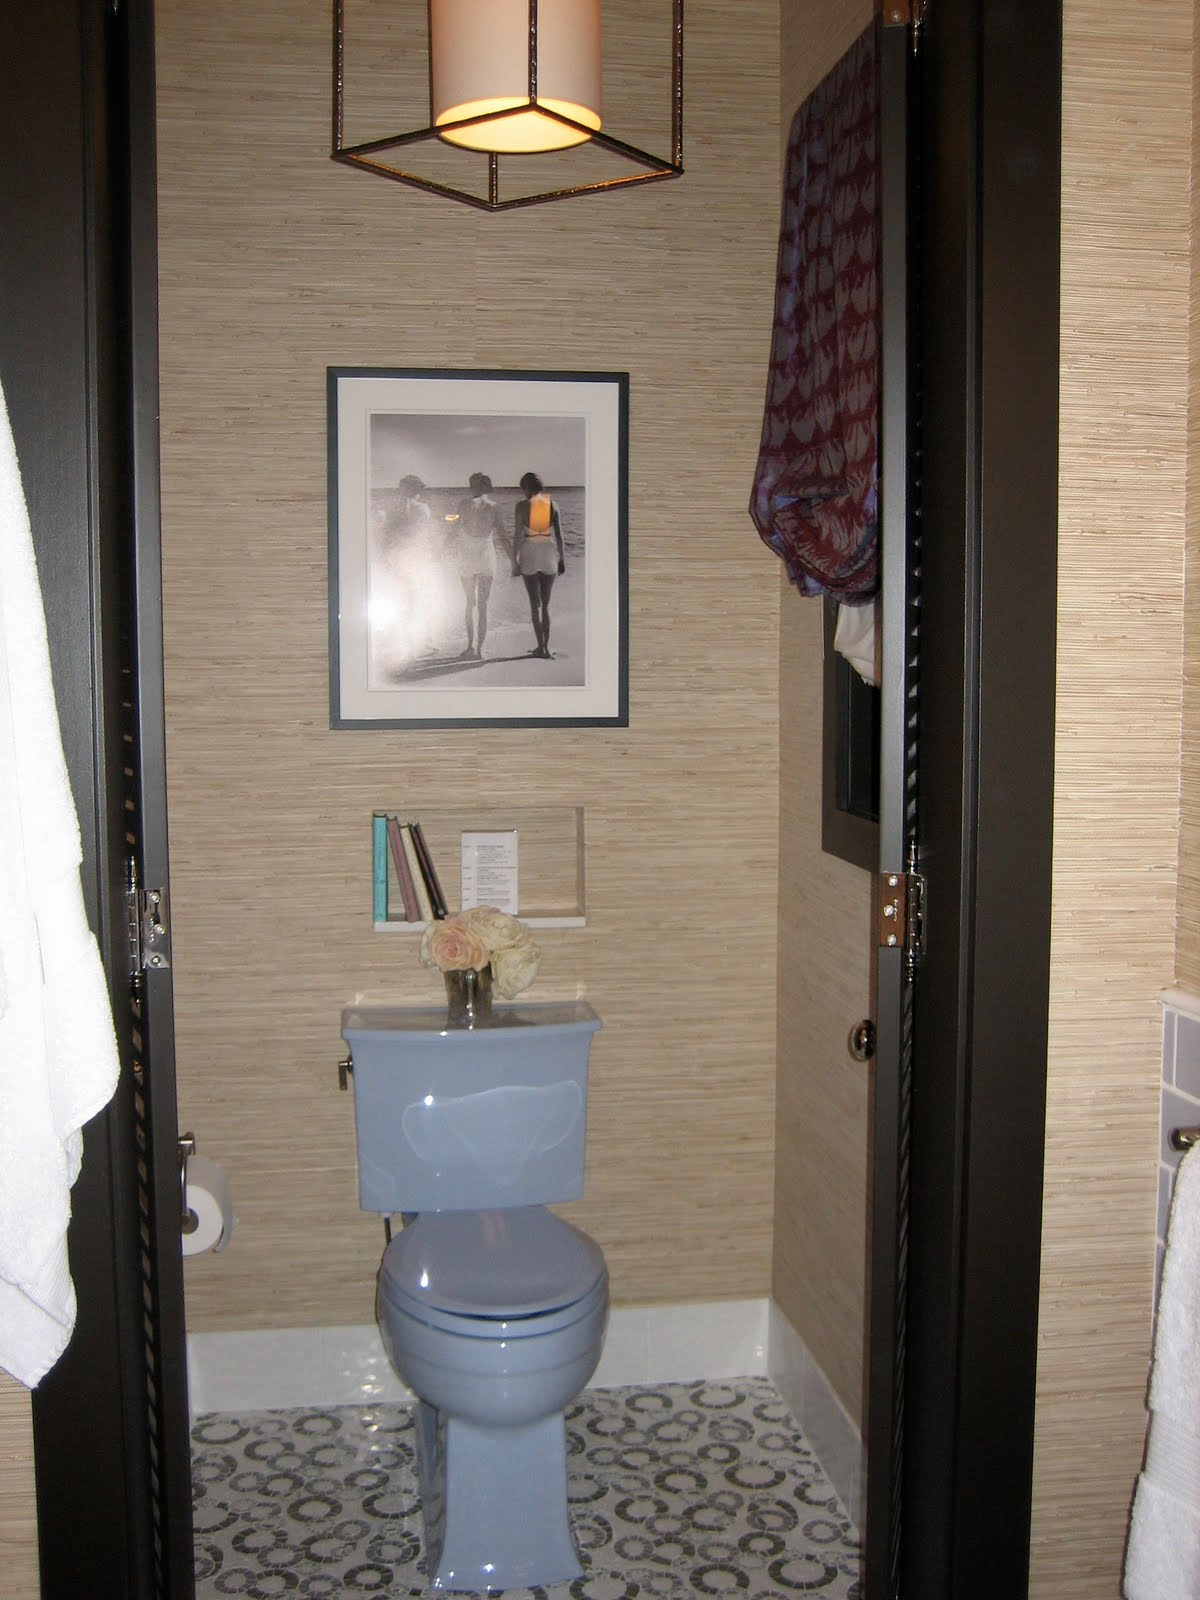 Toilet design toilet design room design ideas room Toilet room design ideas